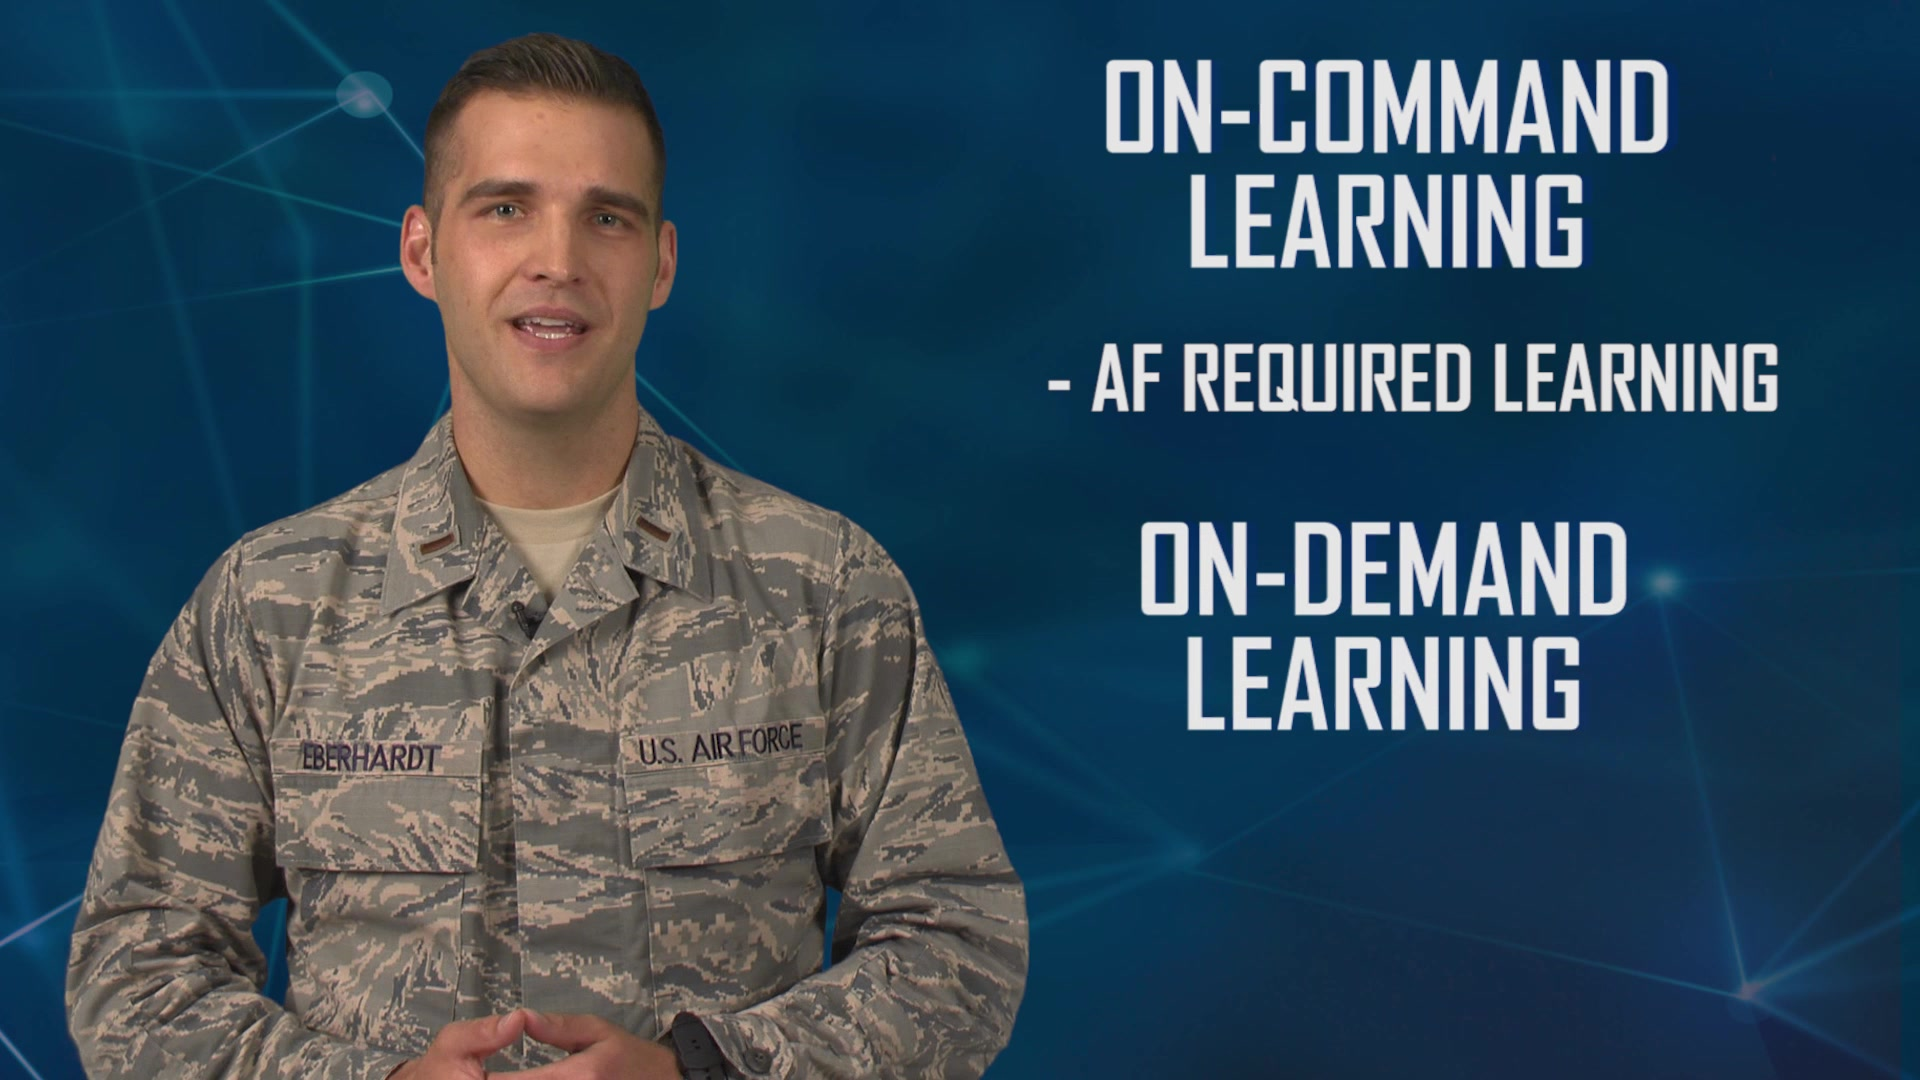 Air Education and Training Command is reimagining the way Airmen learn through the Continuum of Learning, a paradigm shift in education, training and the capitalization of experiences.   This video explains on-command and on-demand learning.